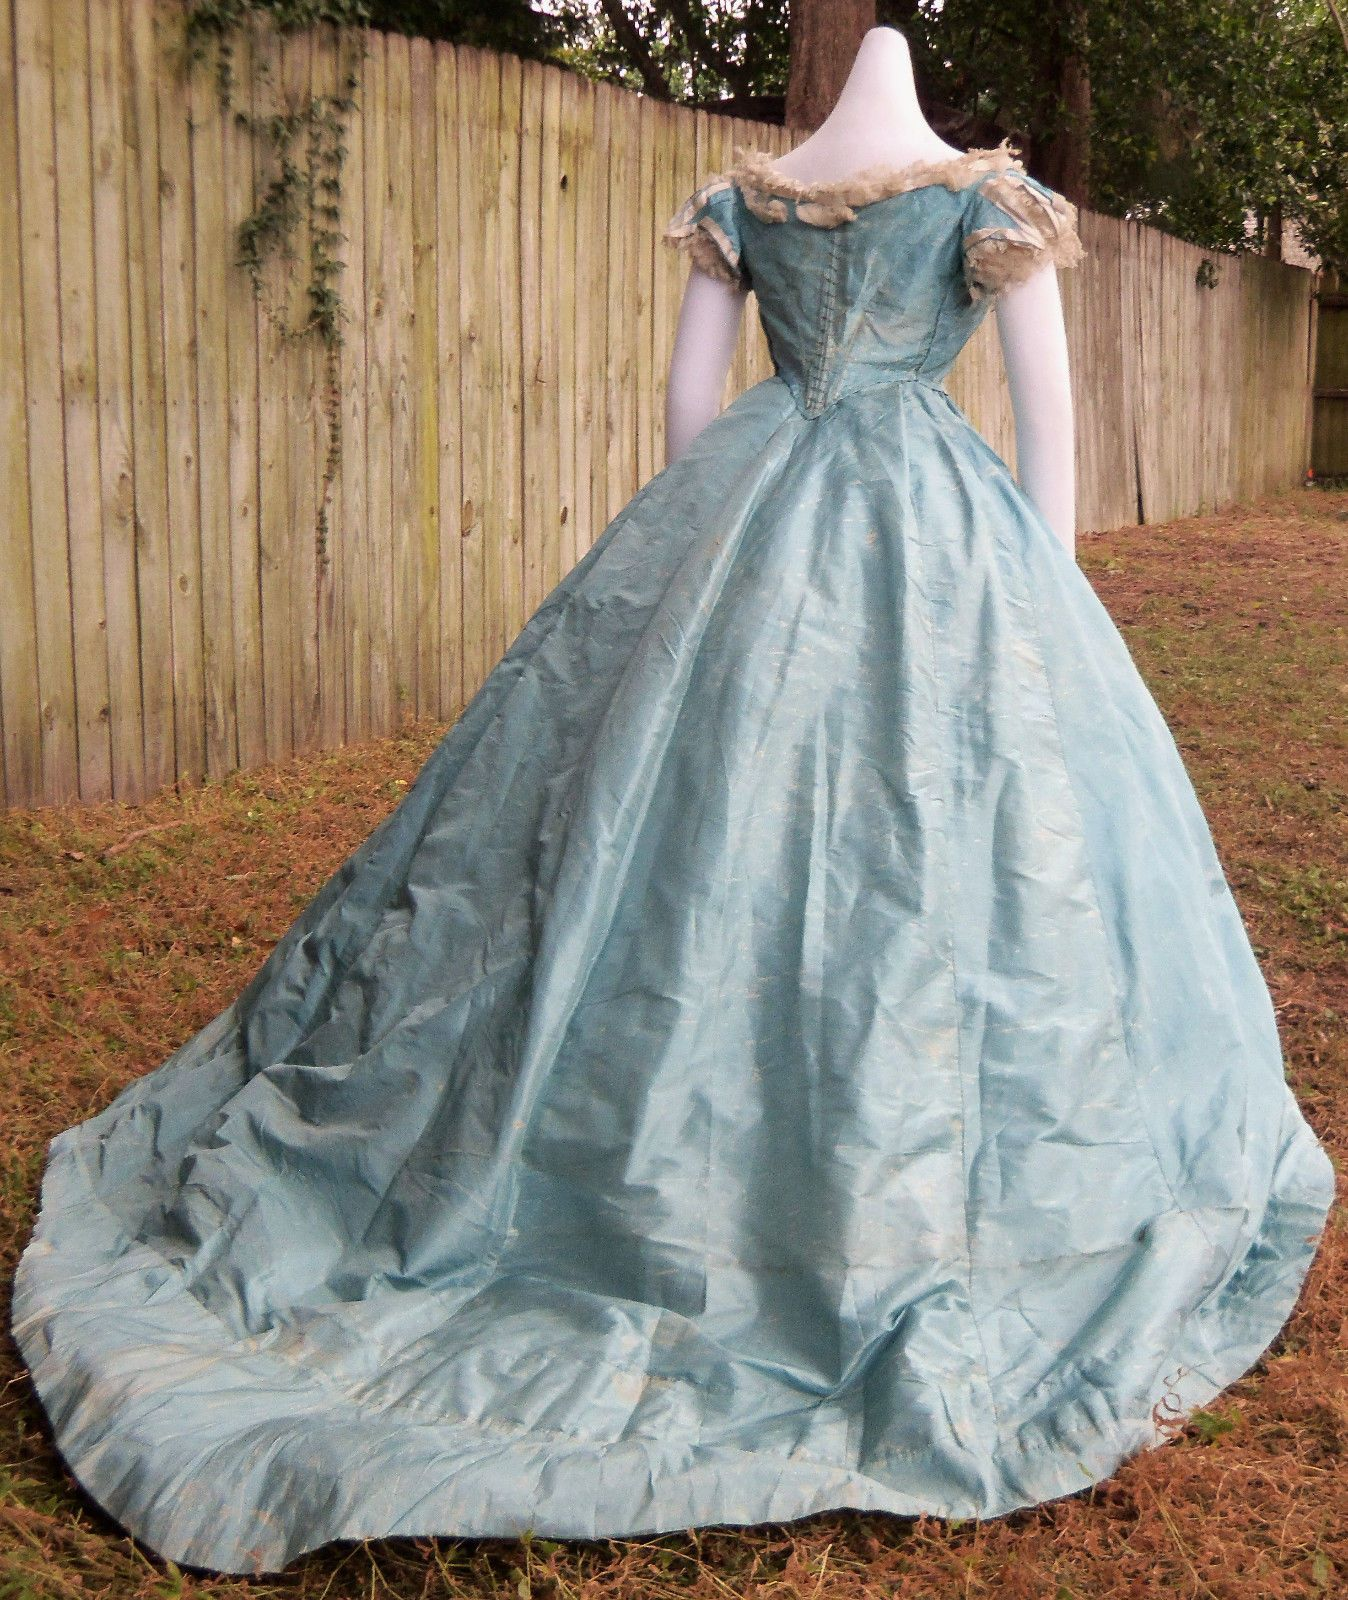 ORIGINAL CIVIL WAR ERA BALL GOWN c.1865 | Satin tulle, Silk taffeta ...